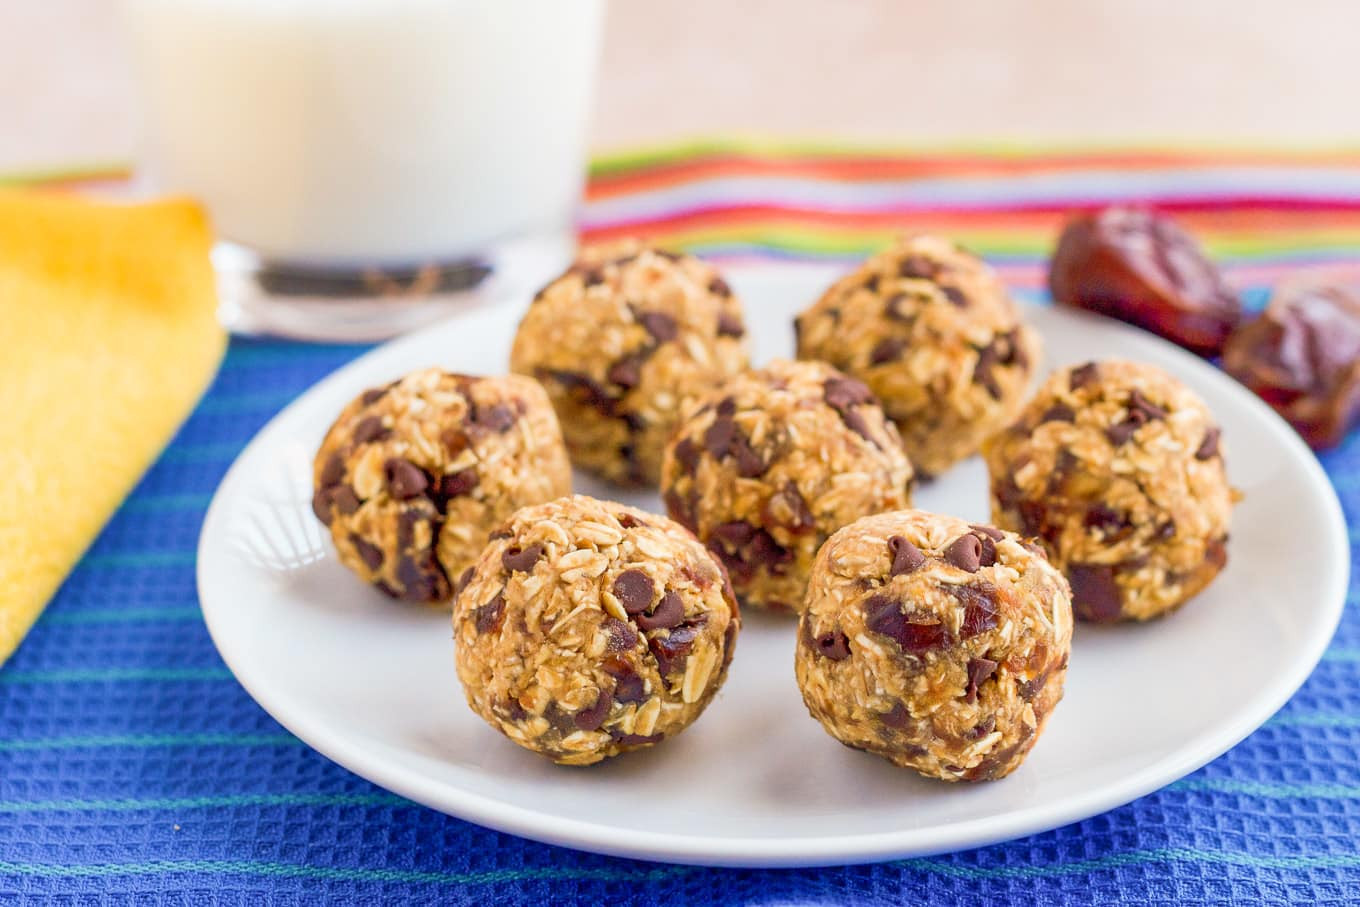 No Bake Chocolate Chip Cookies  No bake chocolate chip cookie balls 4 ingre nts